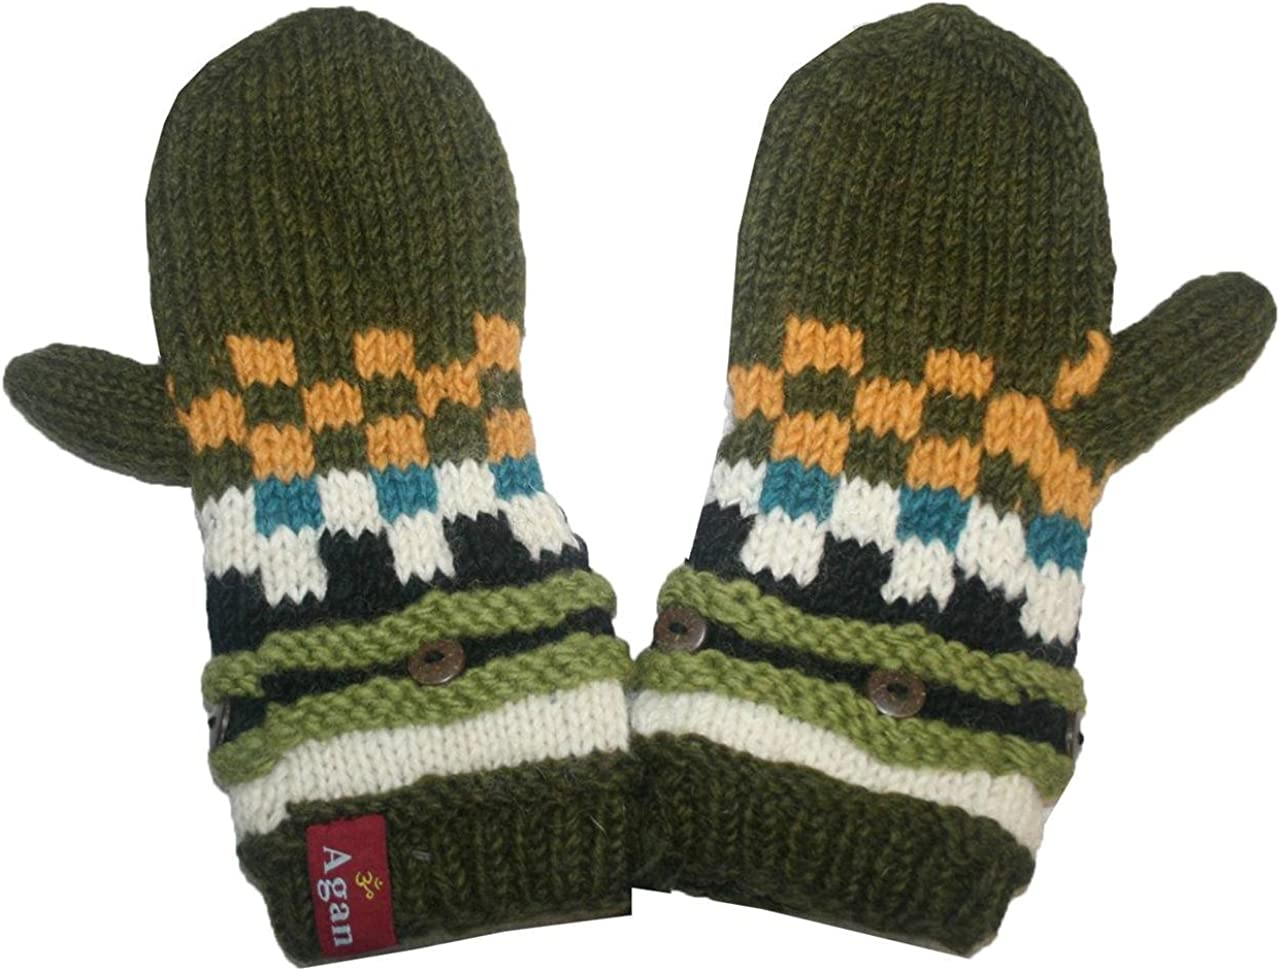 Agan Traders Assorted 1402 Women's Knit Wool Thick Beanie Hat Mitten Fingerless Glove Chunky Warm Fleece From Himalaya